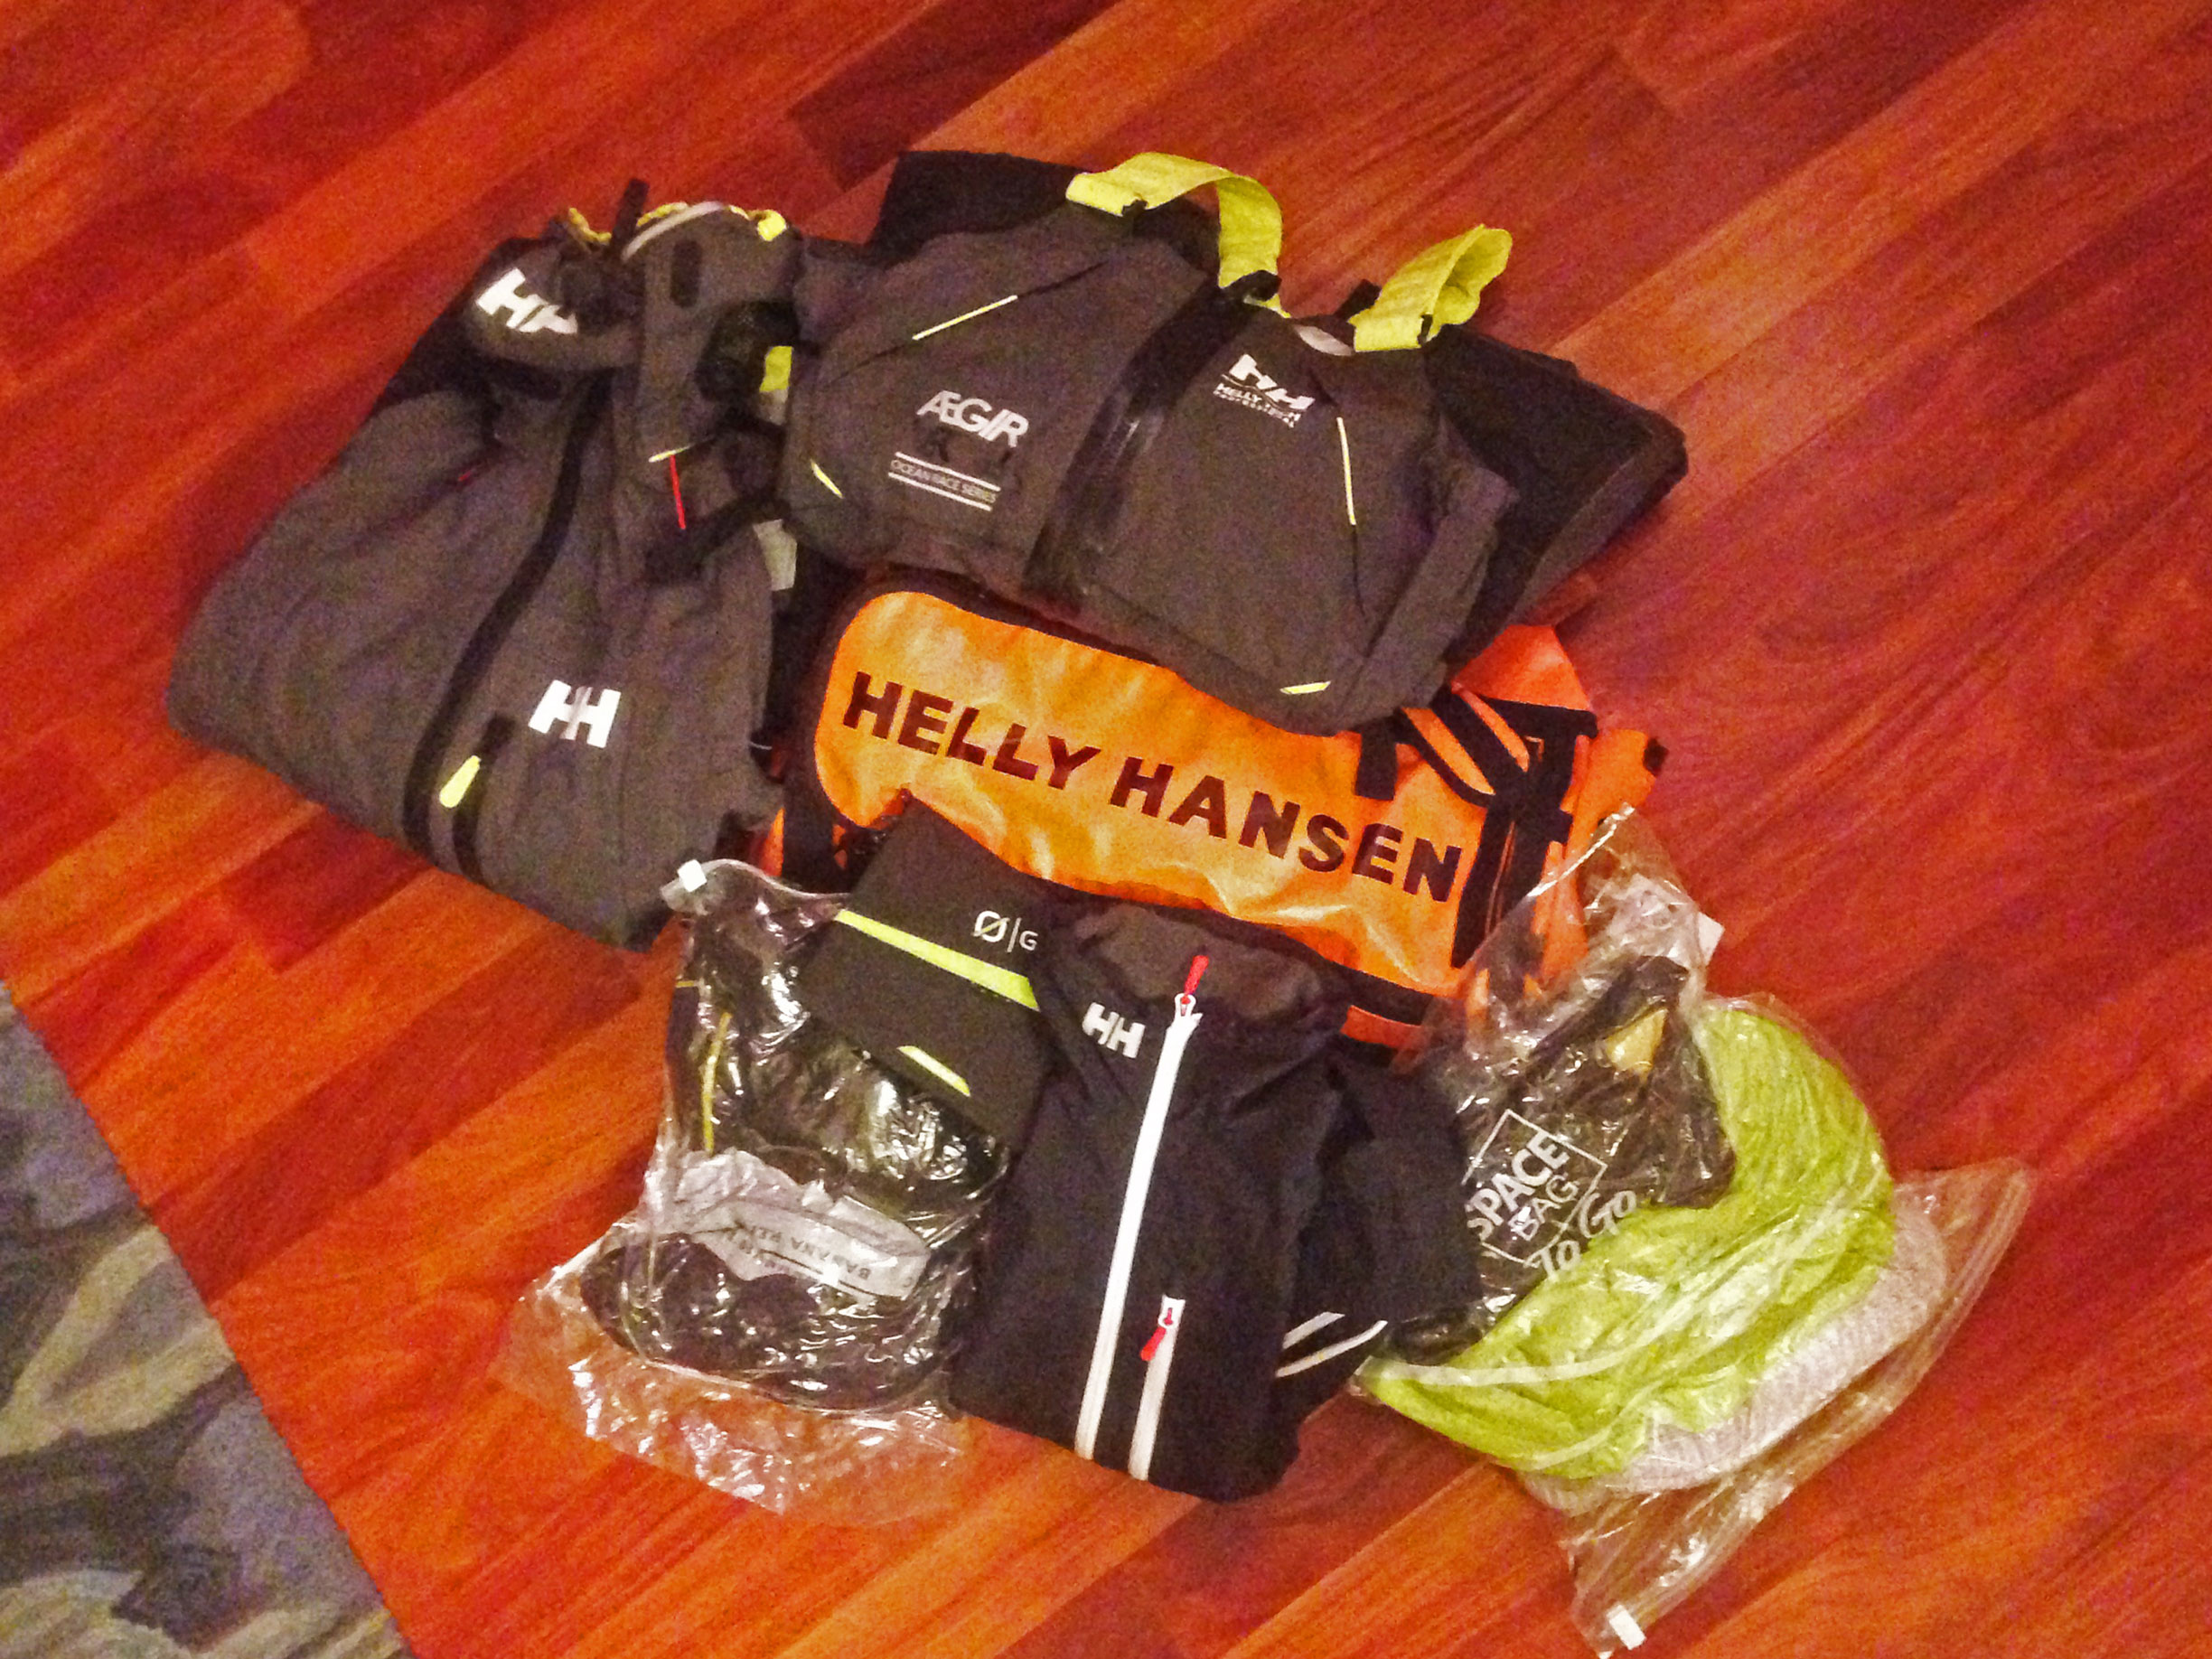 HH 30L duffel.  Check.  HH Aegir offshore kit.  Check.  Base layers sealed up.  Check.